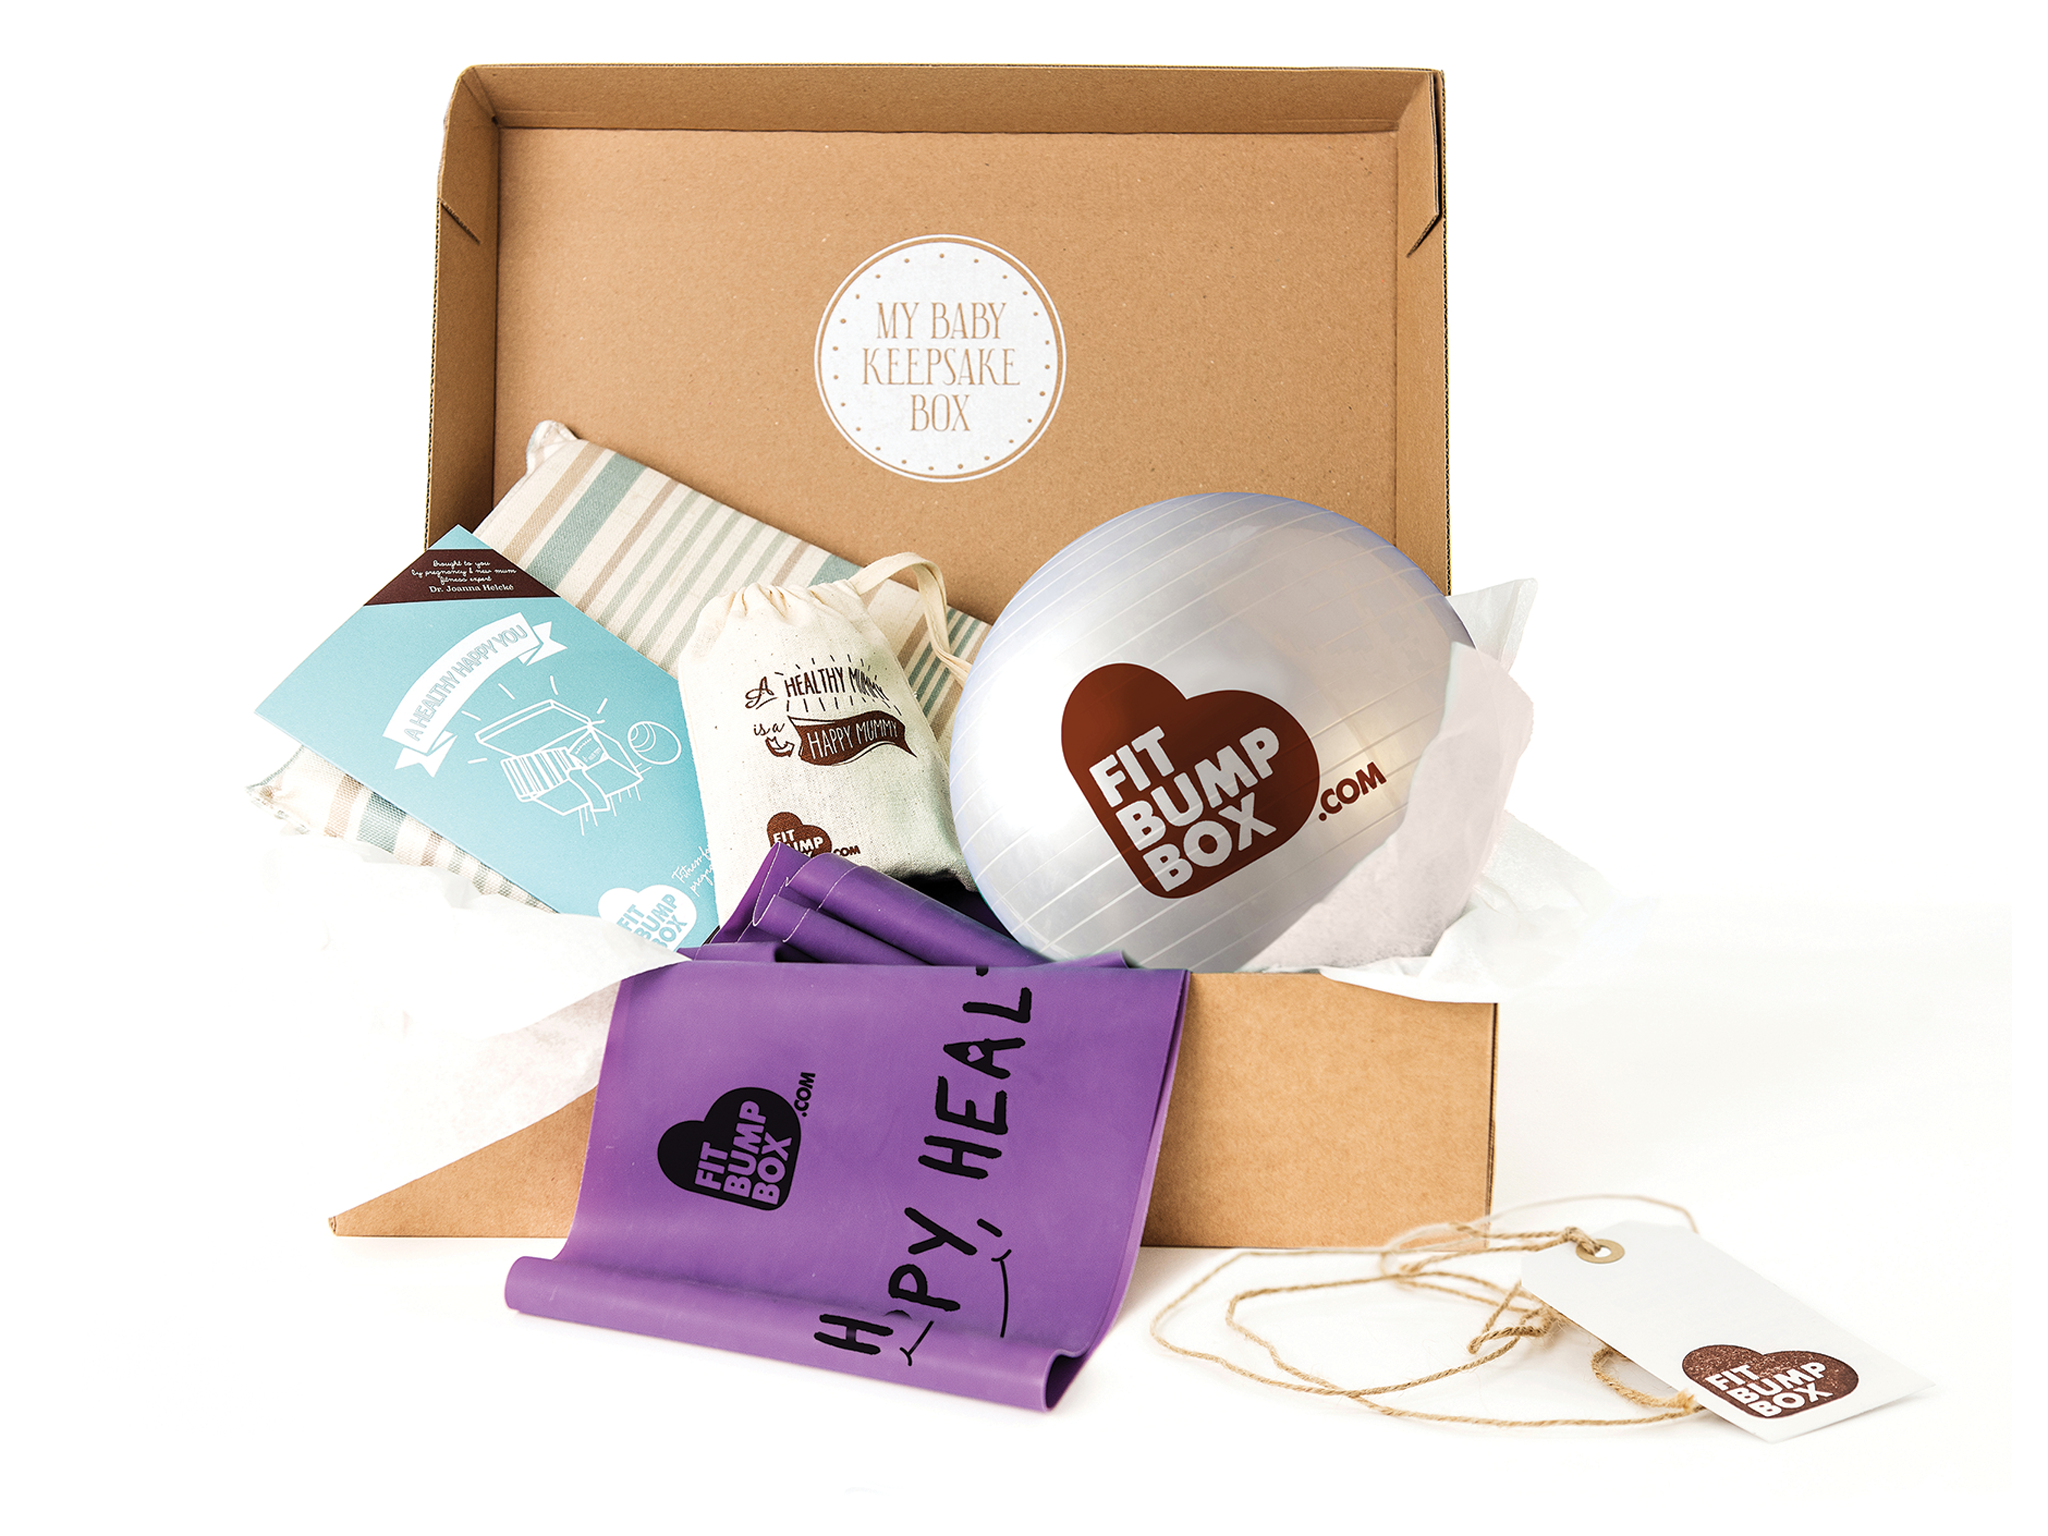 10 Best Baby And Parenting Subscription Boxes The Independent